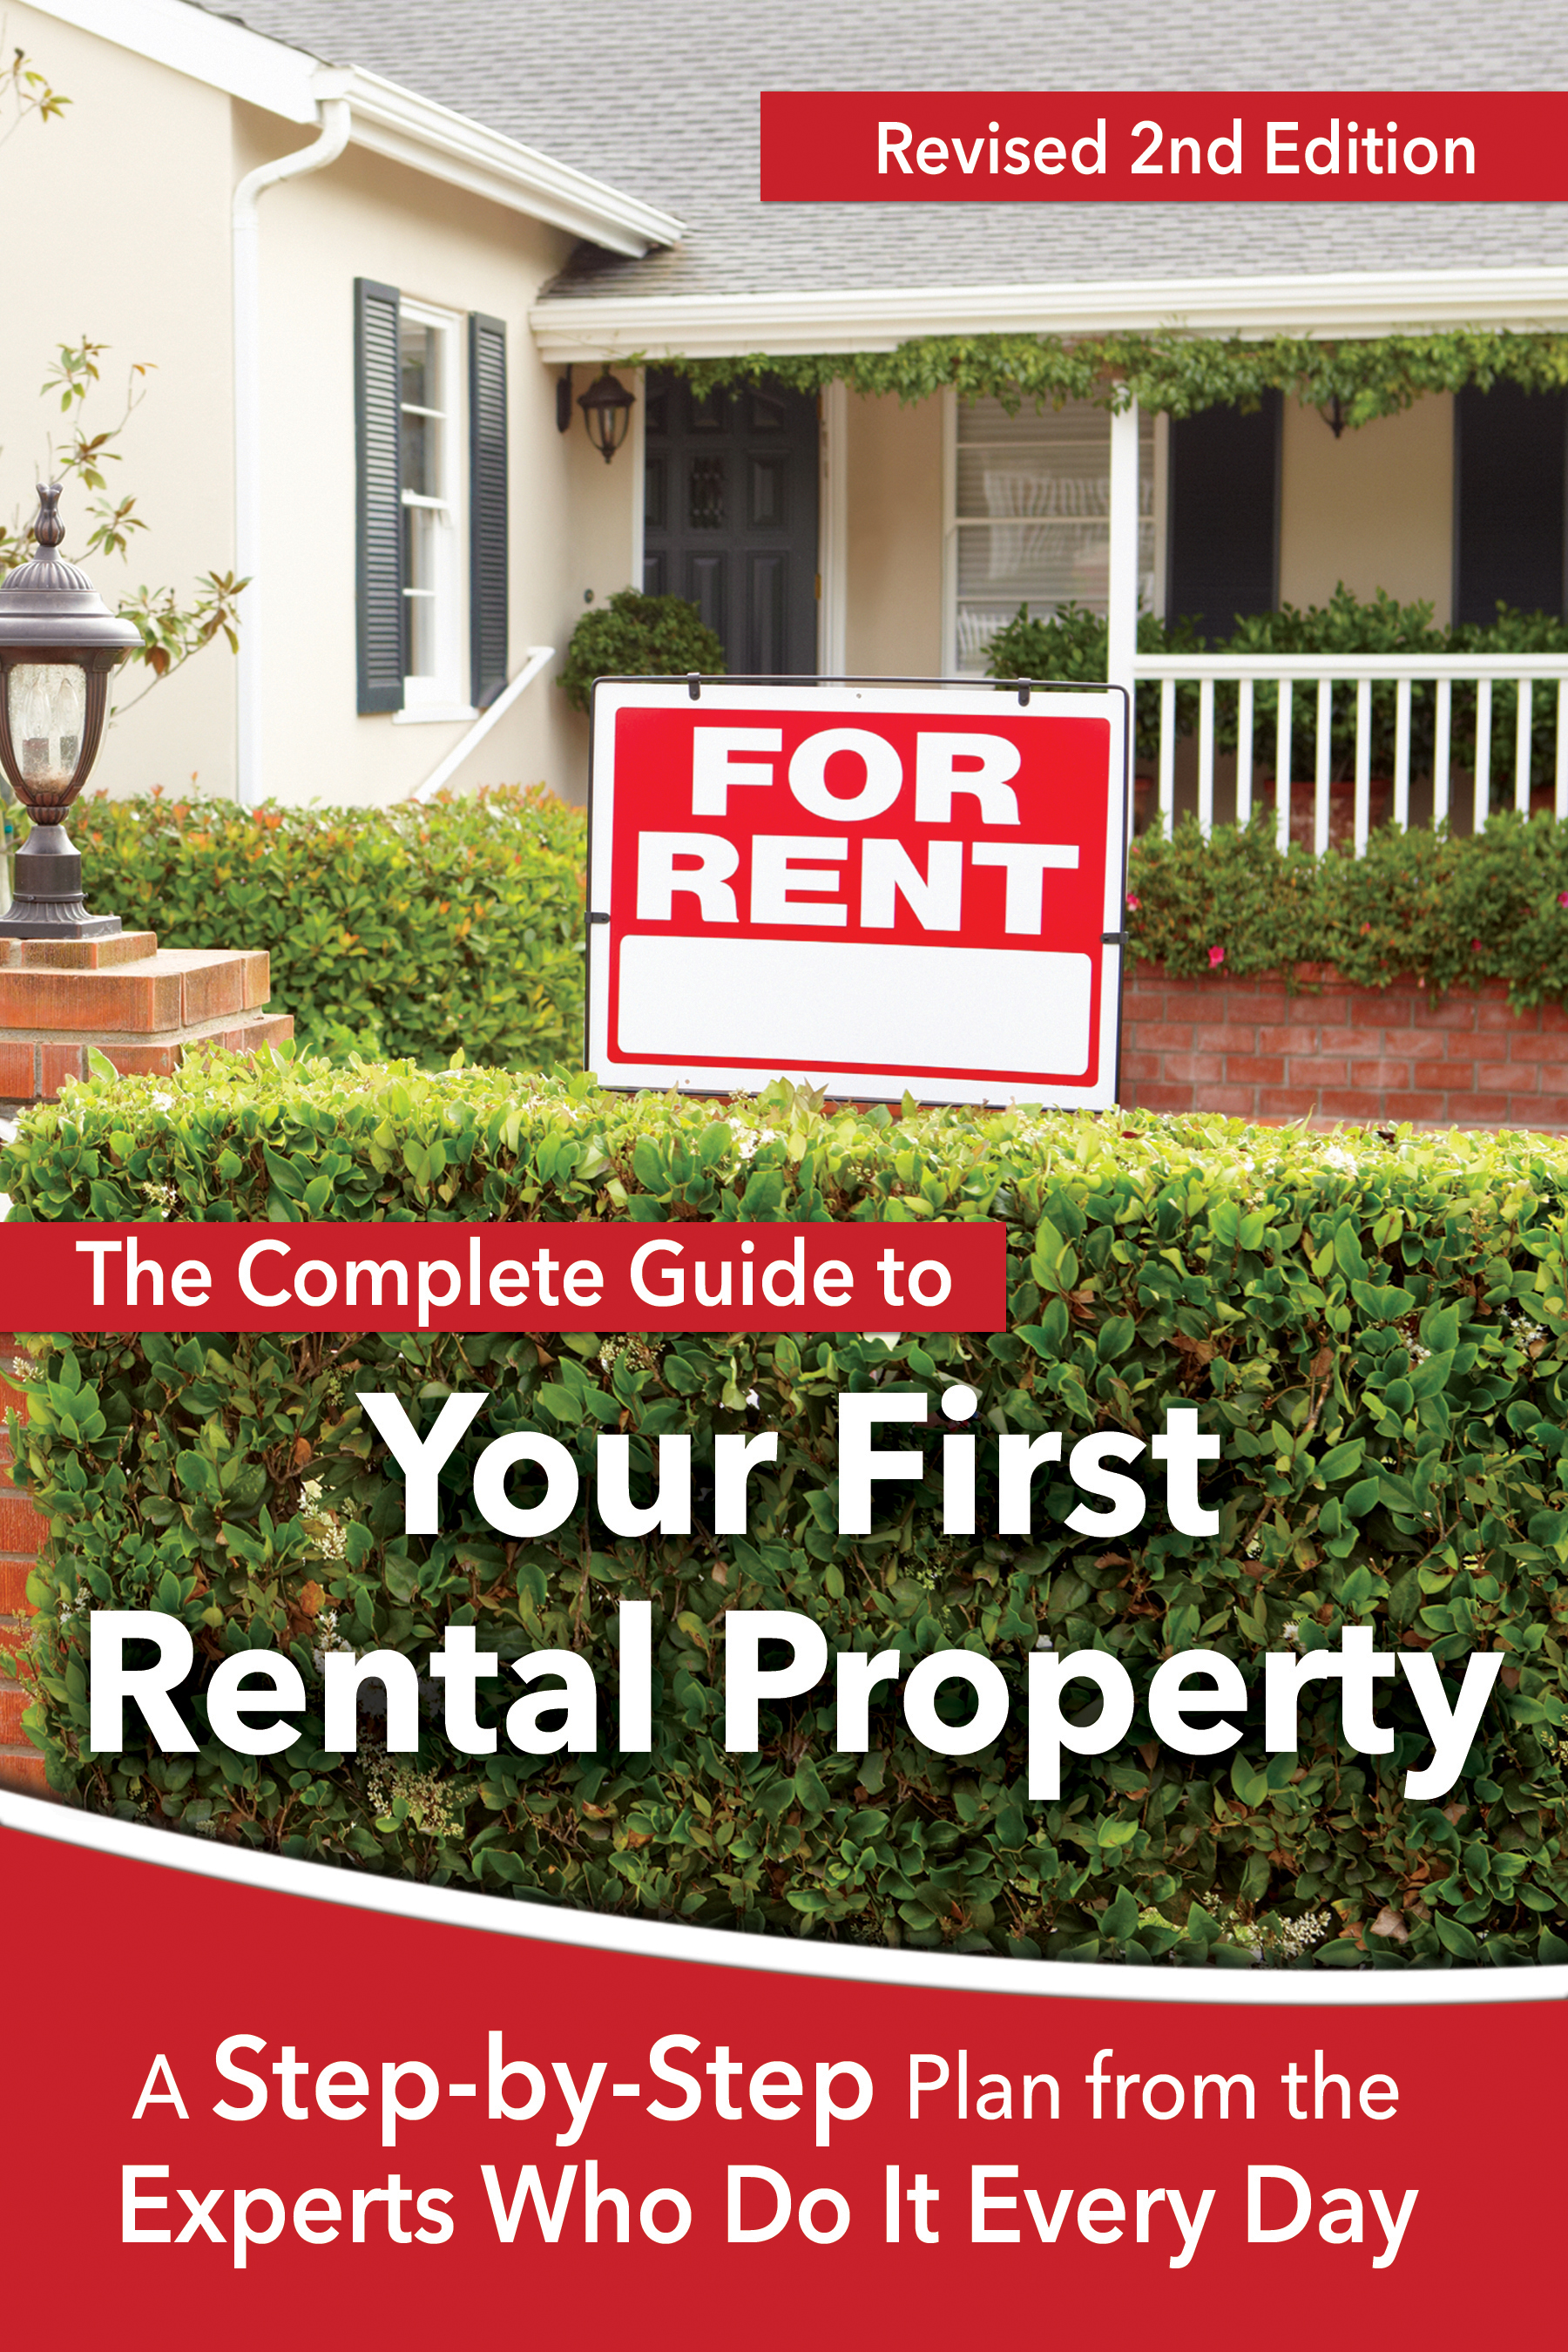 The Complete Guide to Your First Rental Property A Step-by-Step Plan from the Experts Who Do It Every Day Revised 2nd Edition